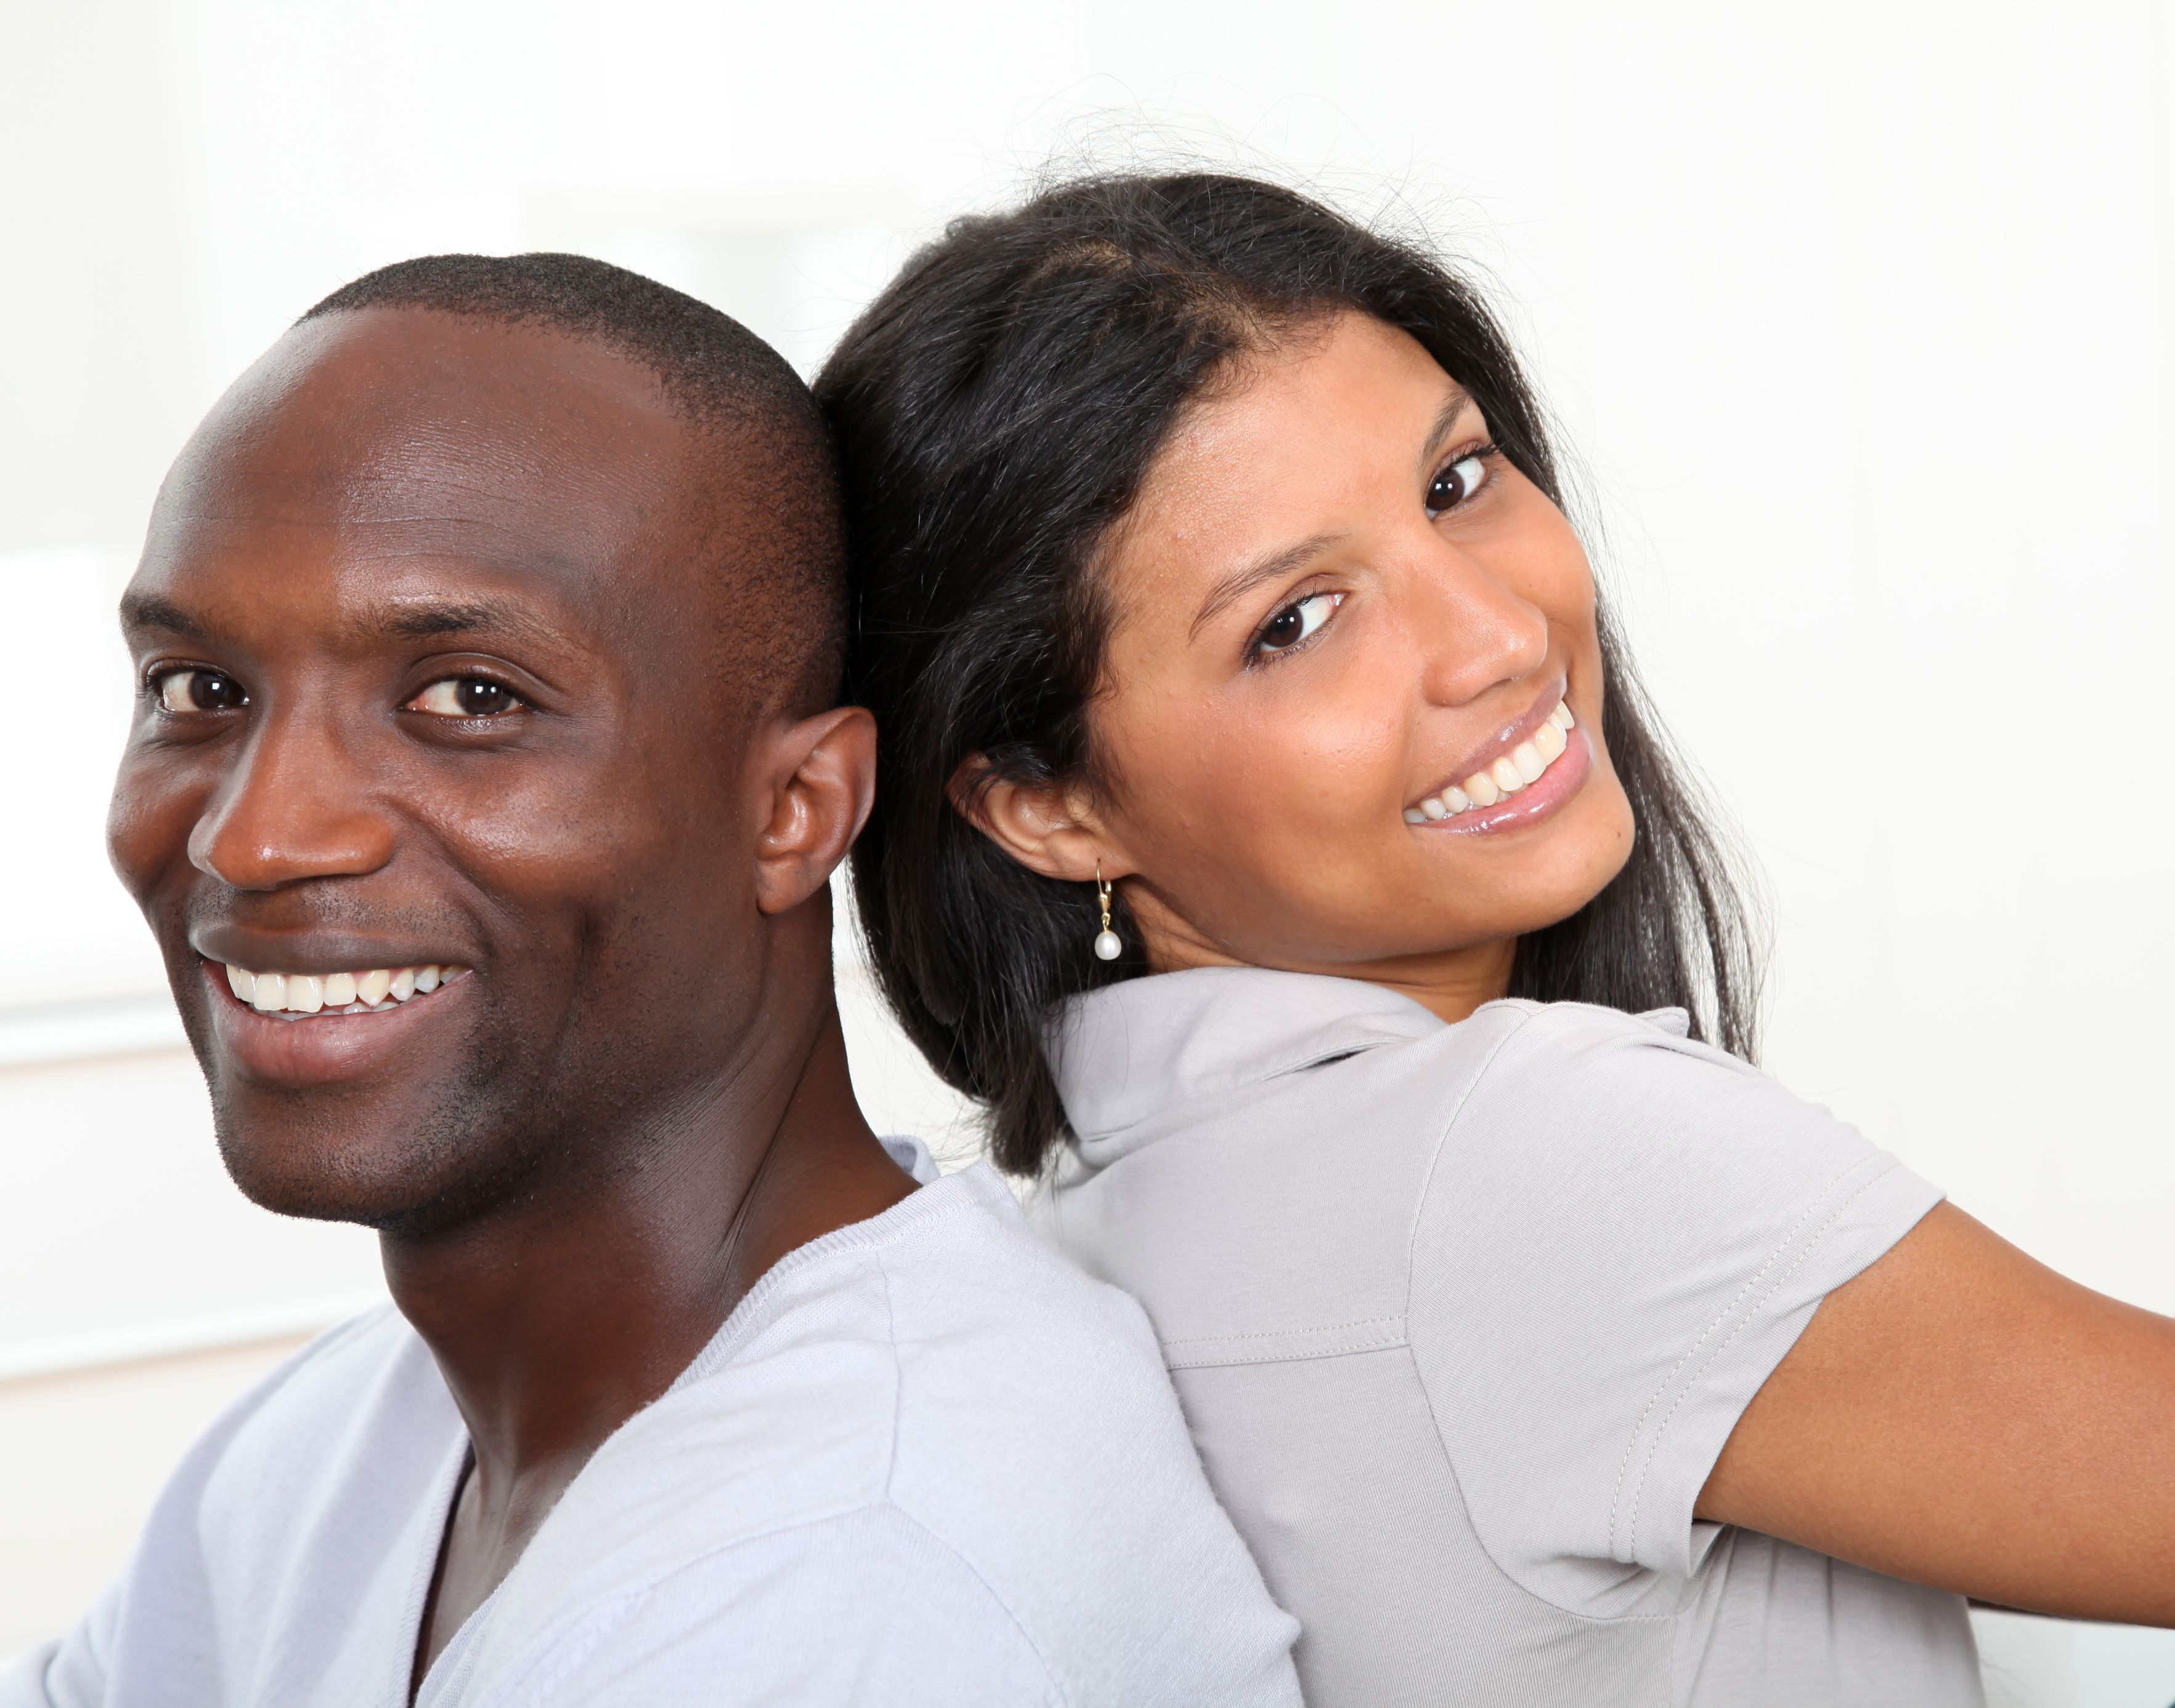 Adult Braces in Carlsbad